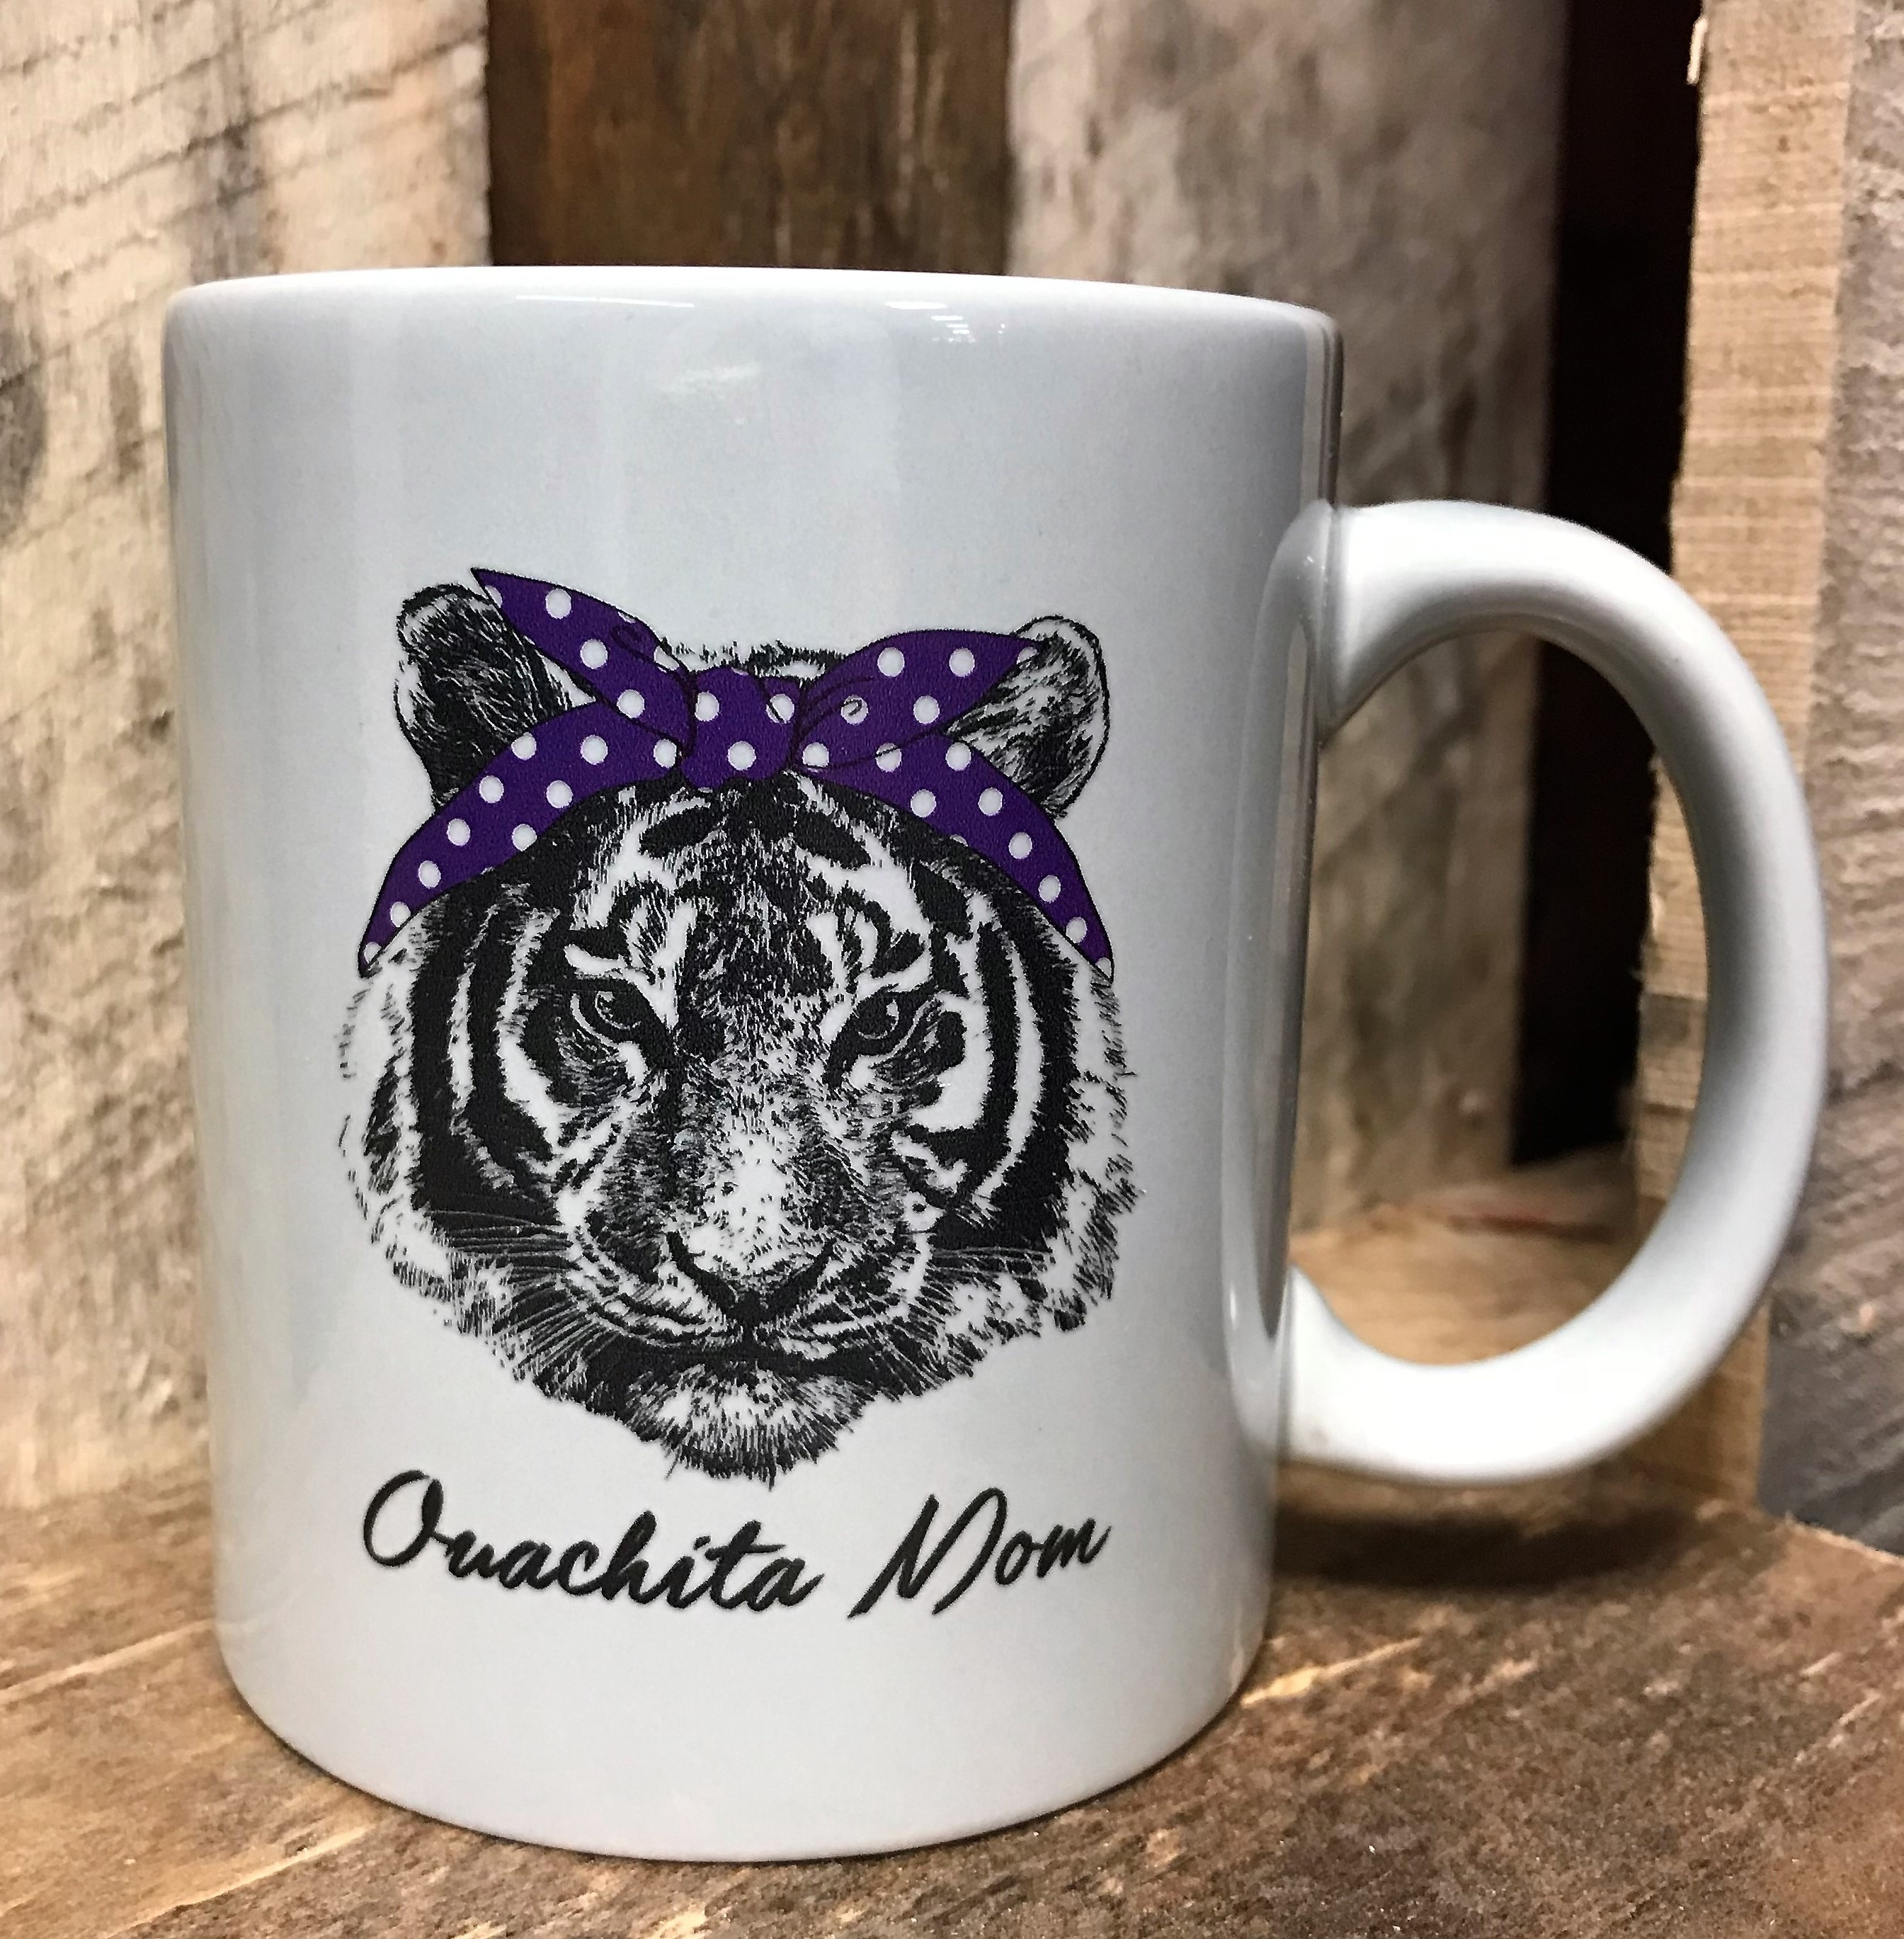 OUACHITA MOM COFFEE MUG